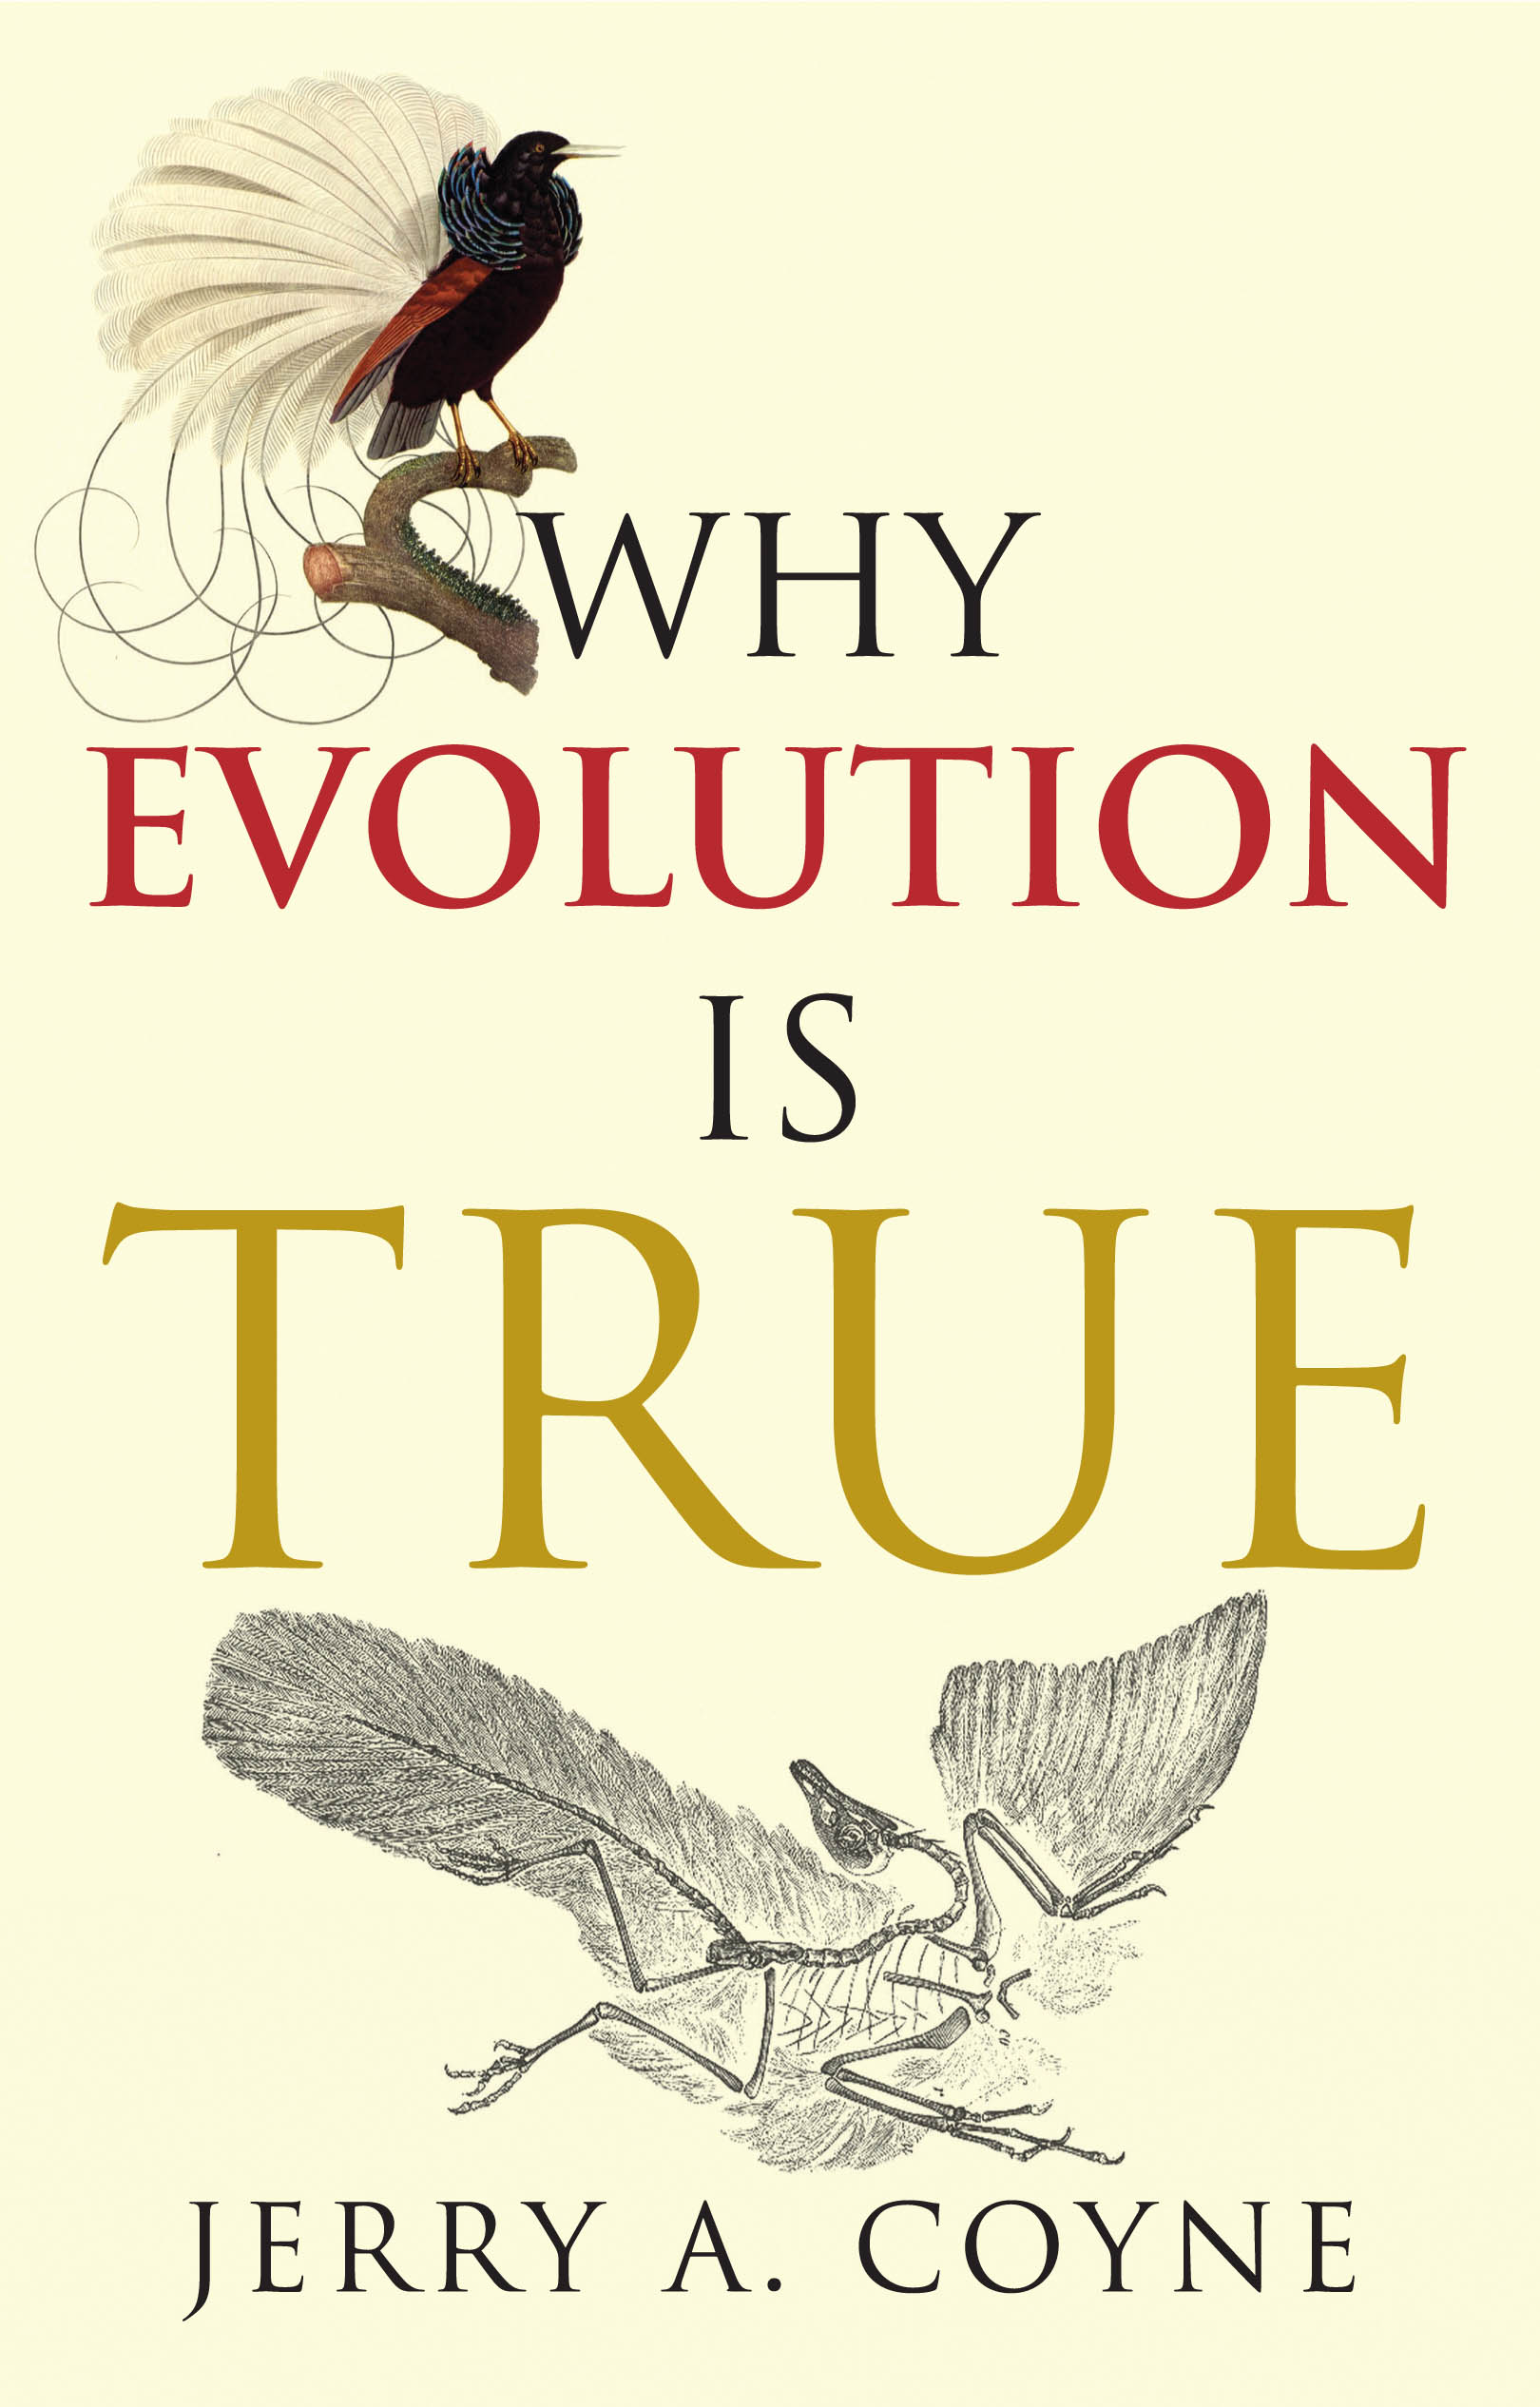 coyne_why_evolution_is_true